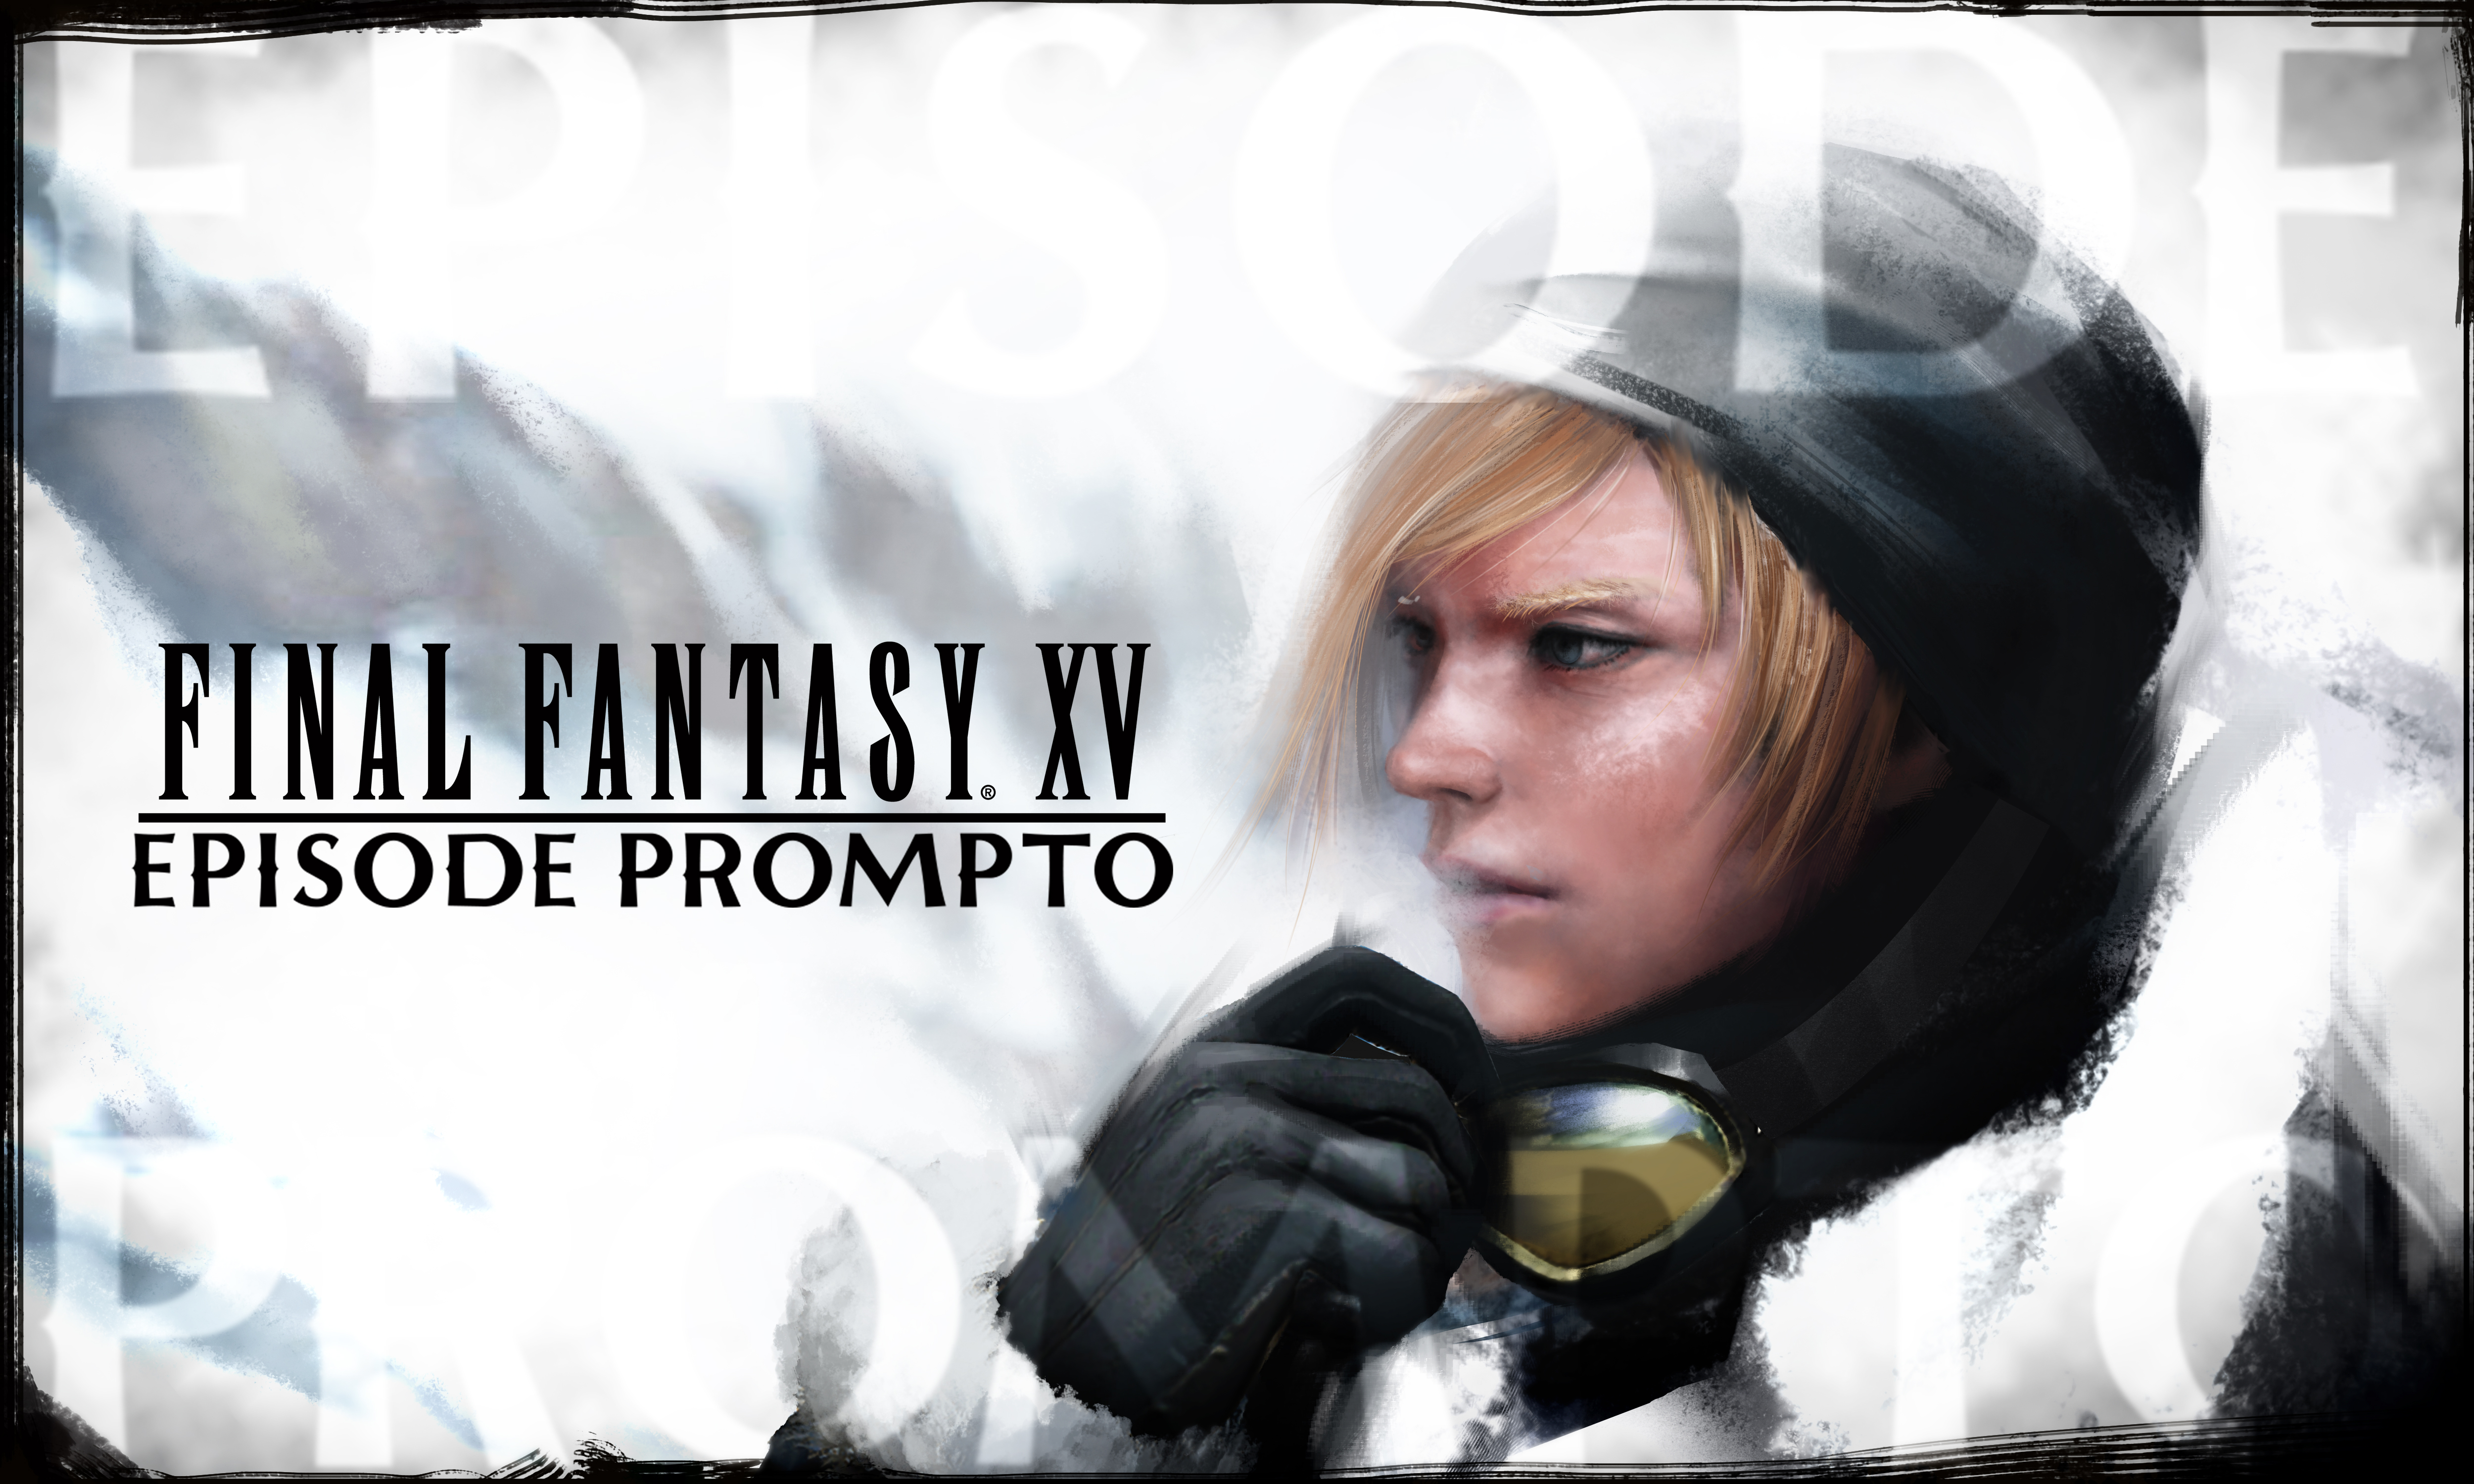 5 things we loved about final fantasy xv episode prompto player one